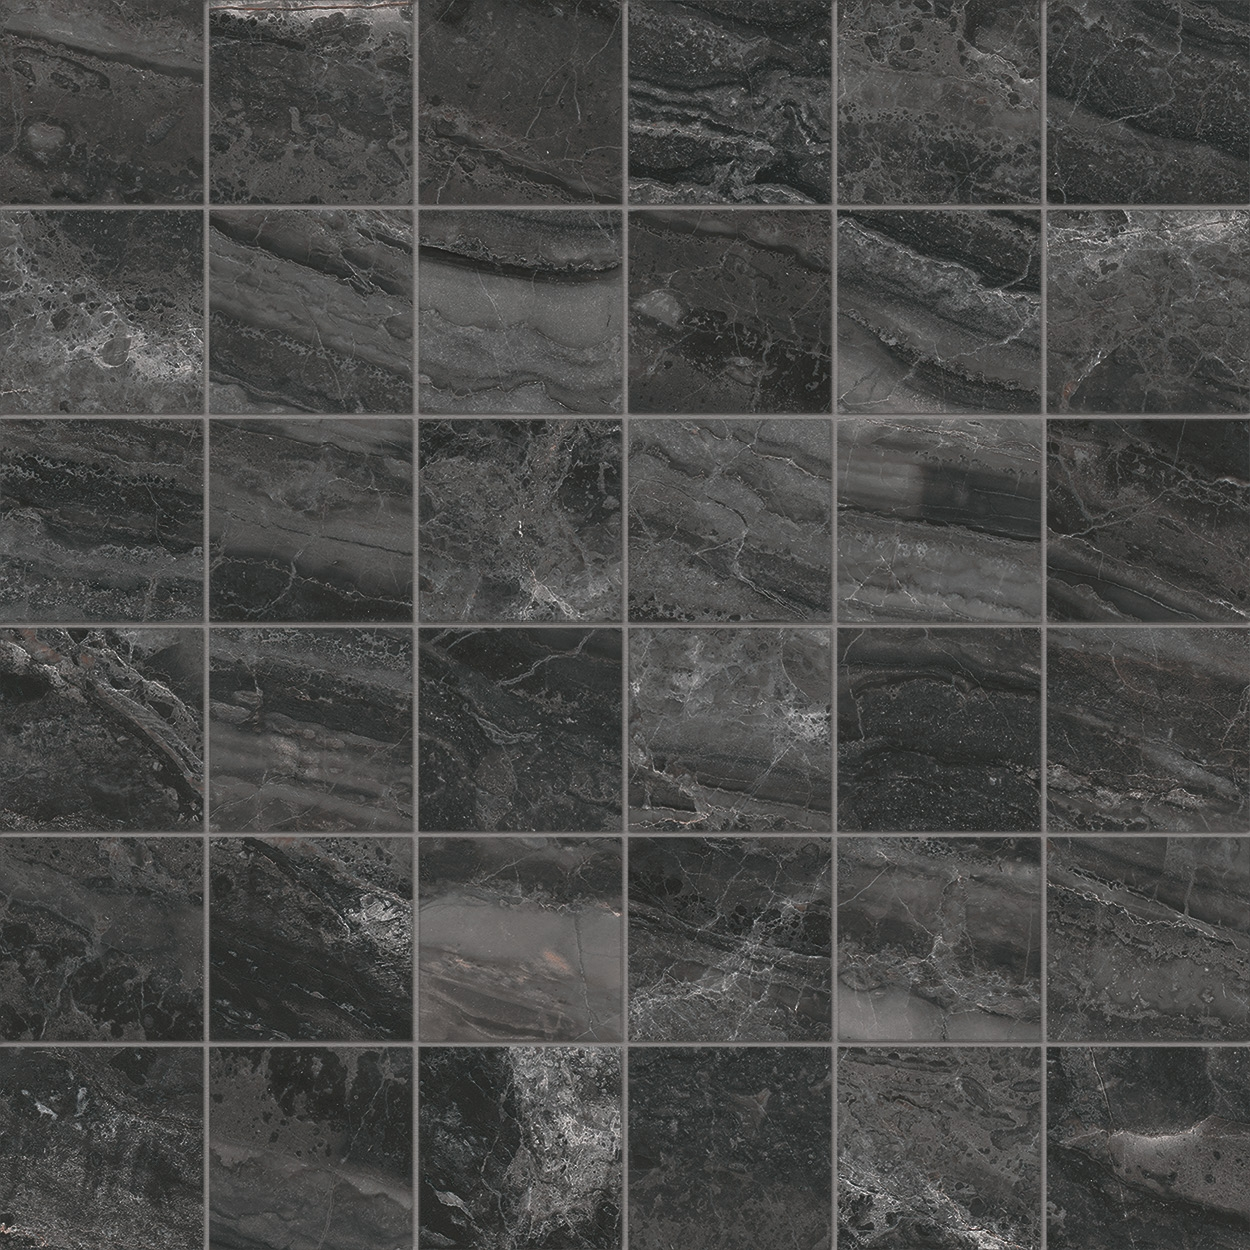 Cosmic tile collection by Unicom Starker | TileScout